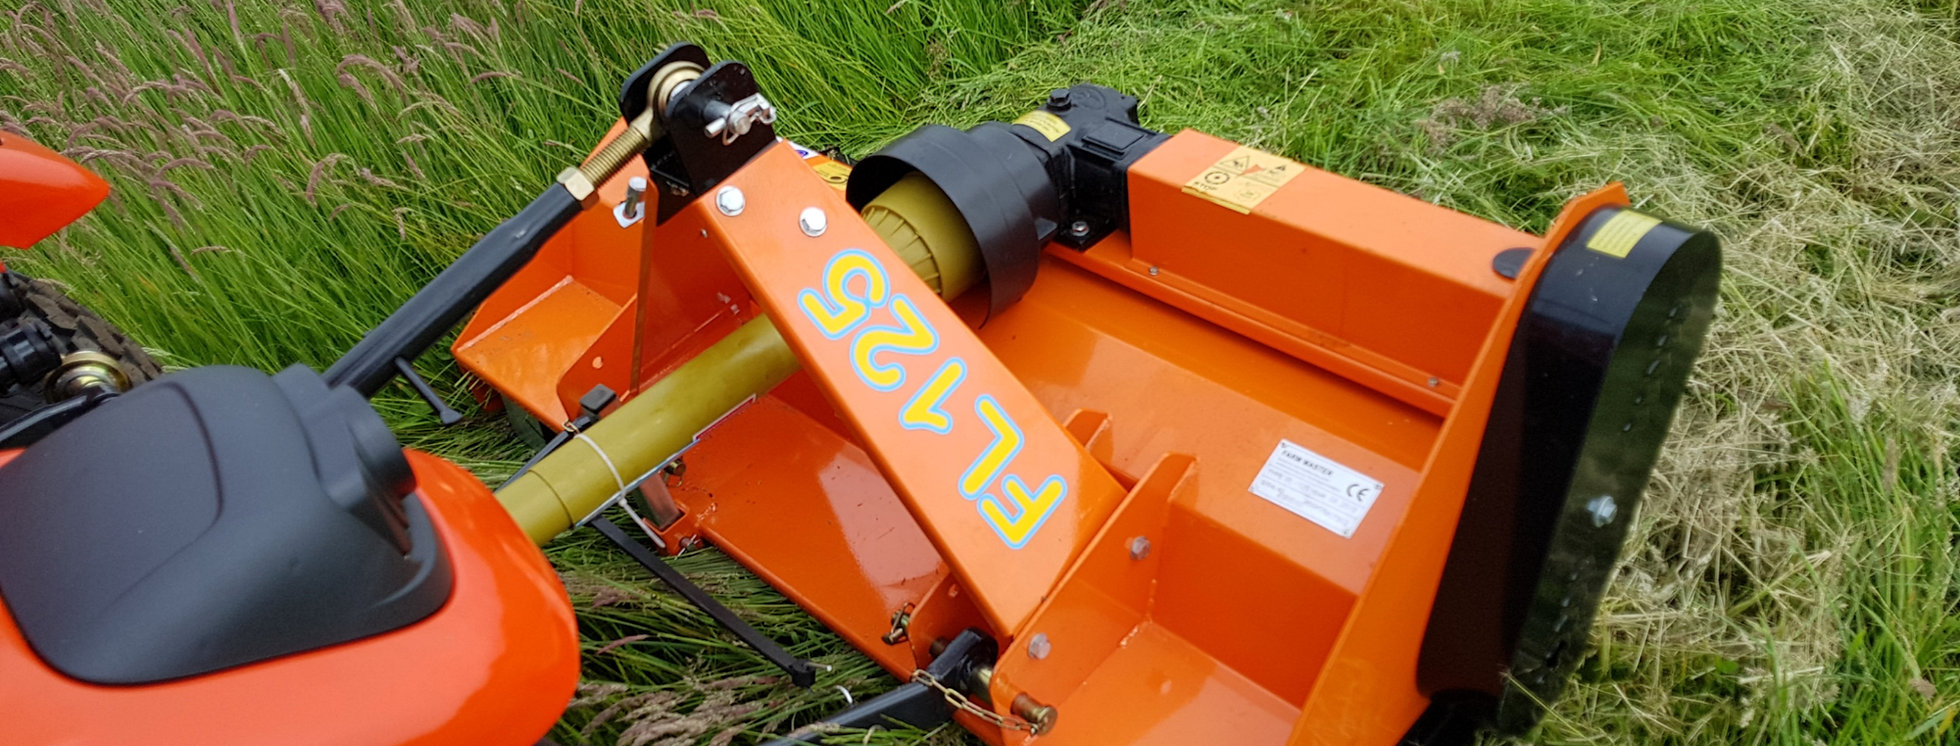 Superb Flail Mower For Sale Uk Flail Mowers For Compact